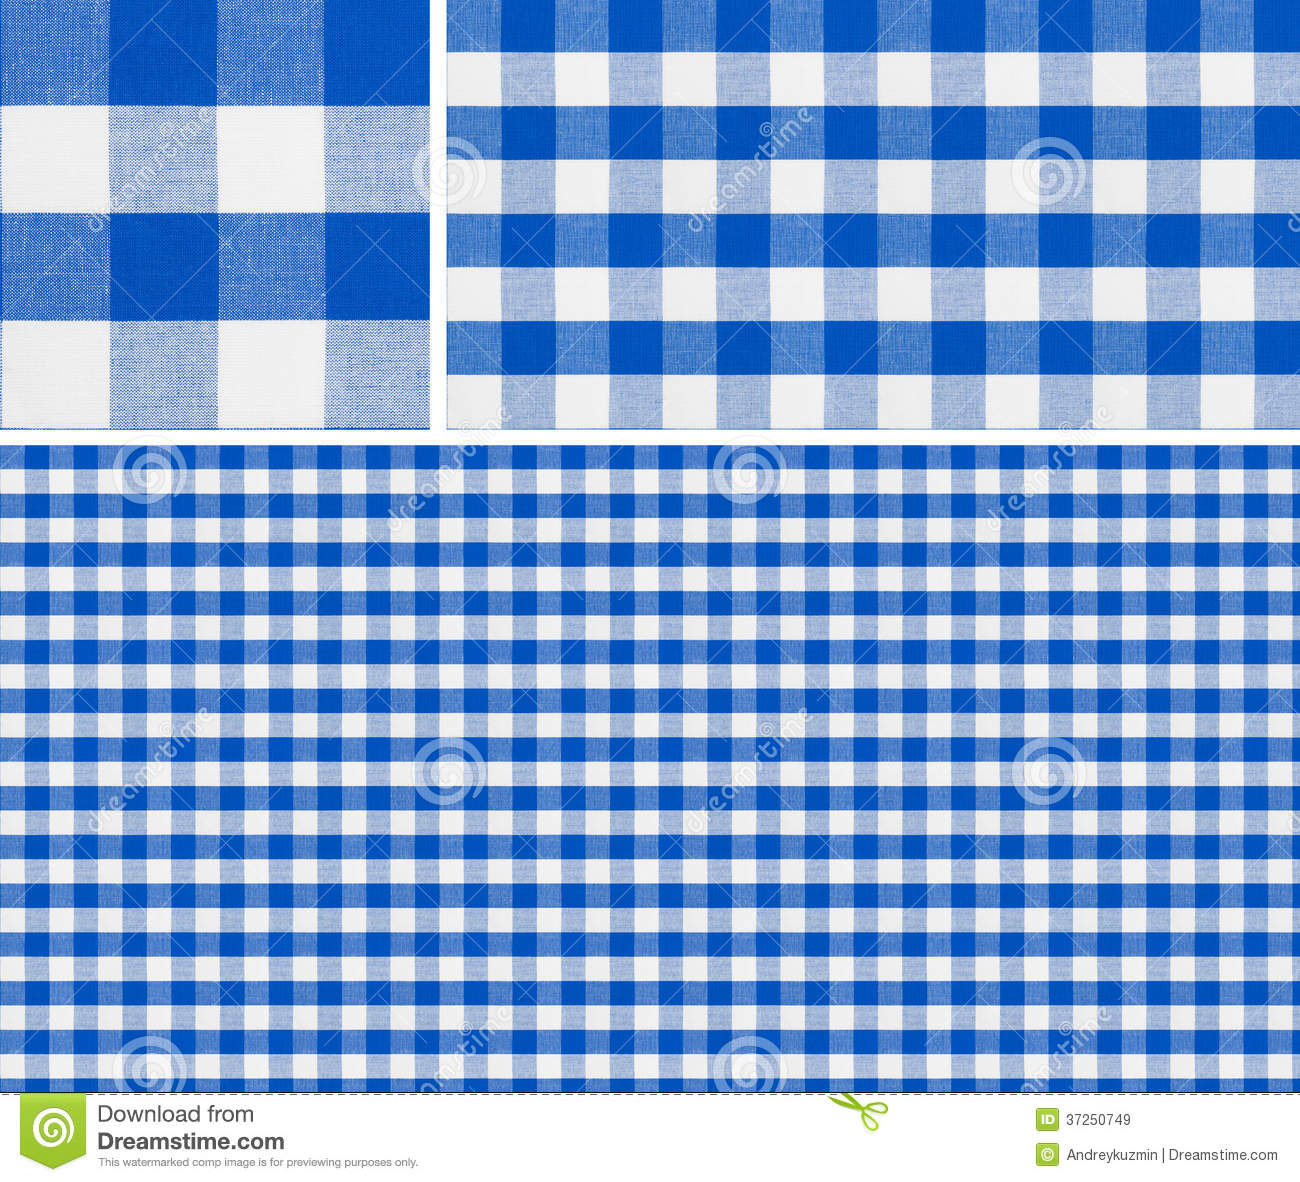 Blue tablecloth background - Seamless Red Picnic Table Cloth Pattern Royalty Free Stock Images